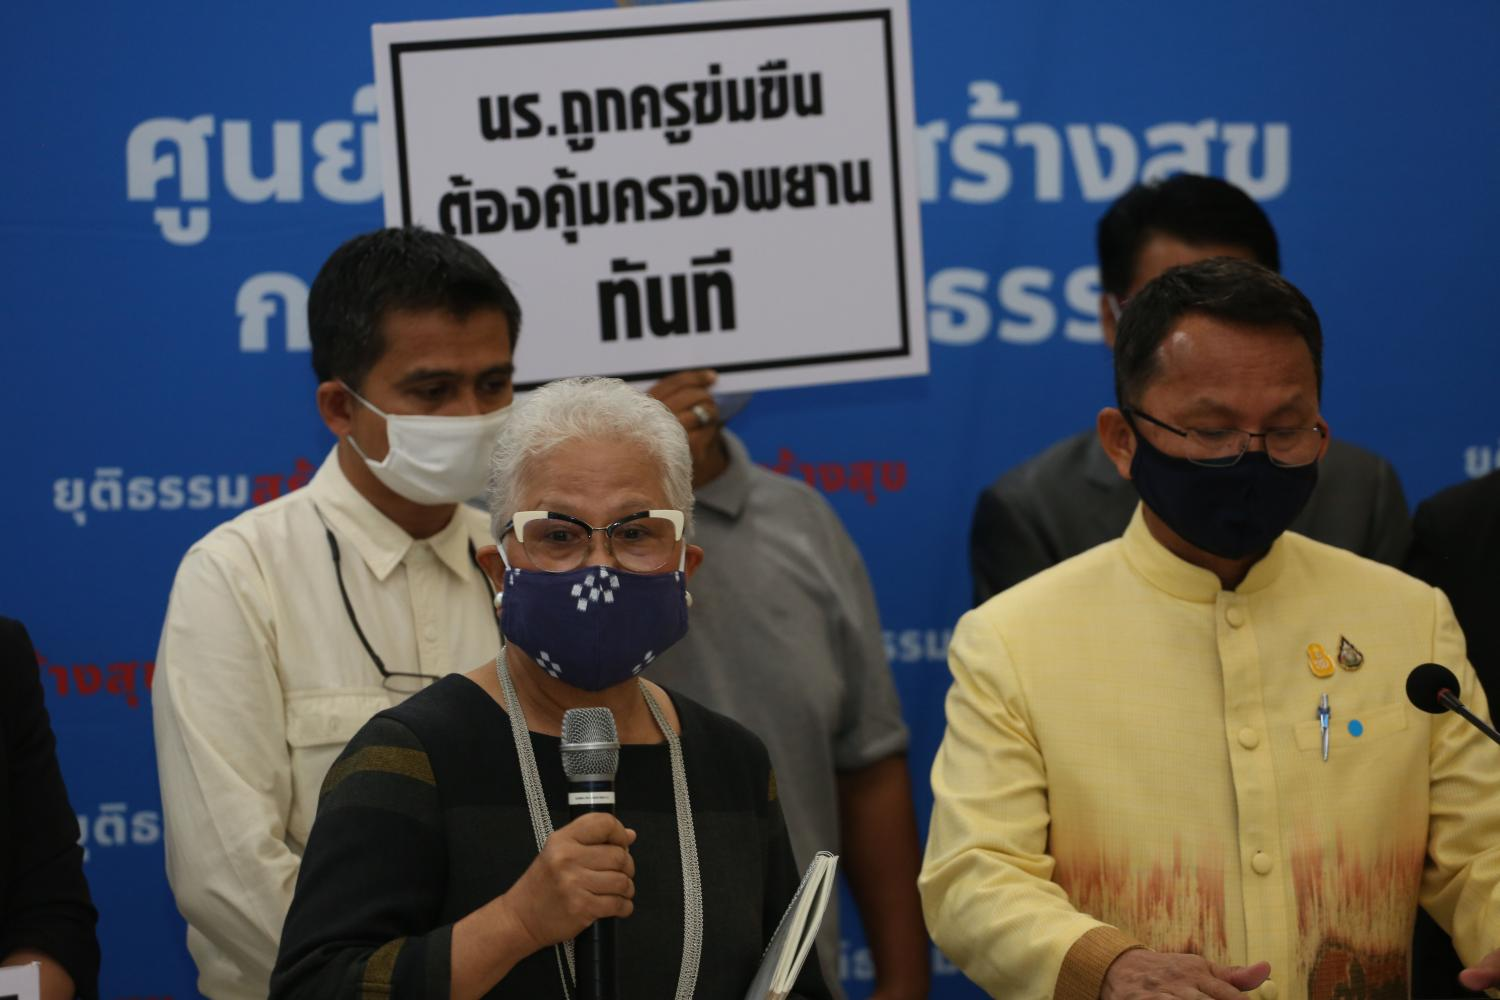 Rights activists led by child protection advocate Thicha Na Nakhon, left, hold placards denouncing the gang rape of schoolgirls by teachers and alumni in Mukdahan province. Varuth Hirunyatheb